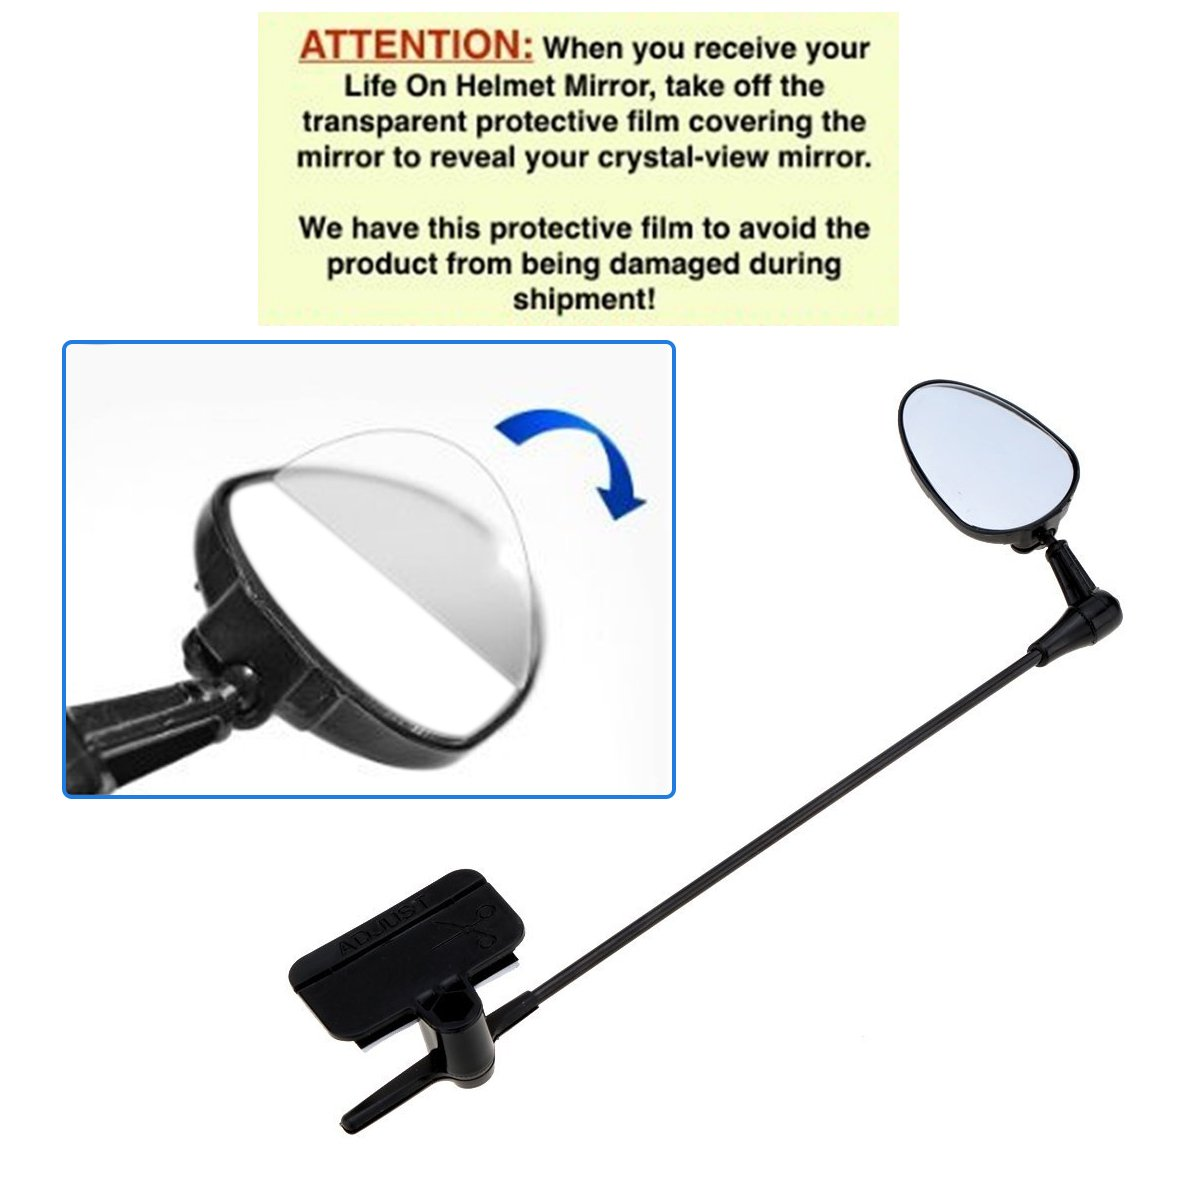 Adjustable Road Bicycle Rear View Mirrors Light Weight Mountain Bikes Side View Mirror for Cycling Riding MeanHoo Bike Helmet Mirror for Adult and Kids Motorcycle